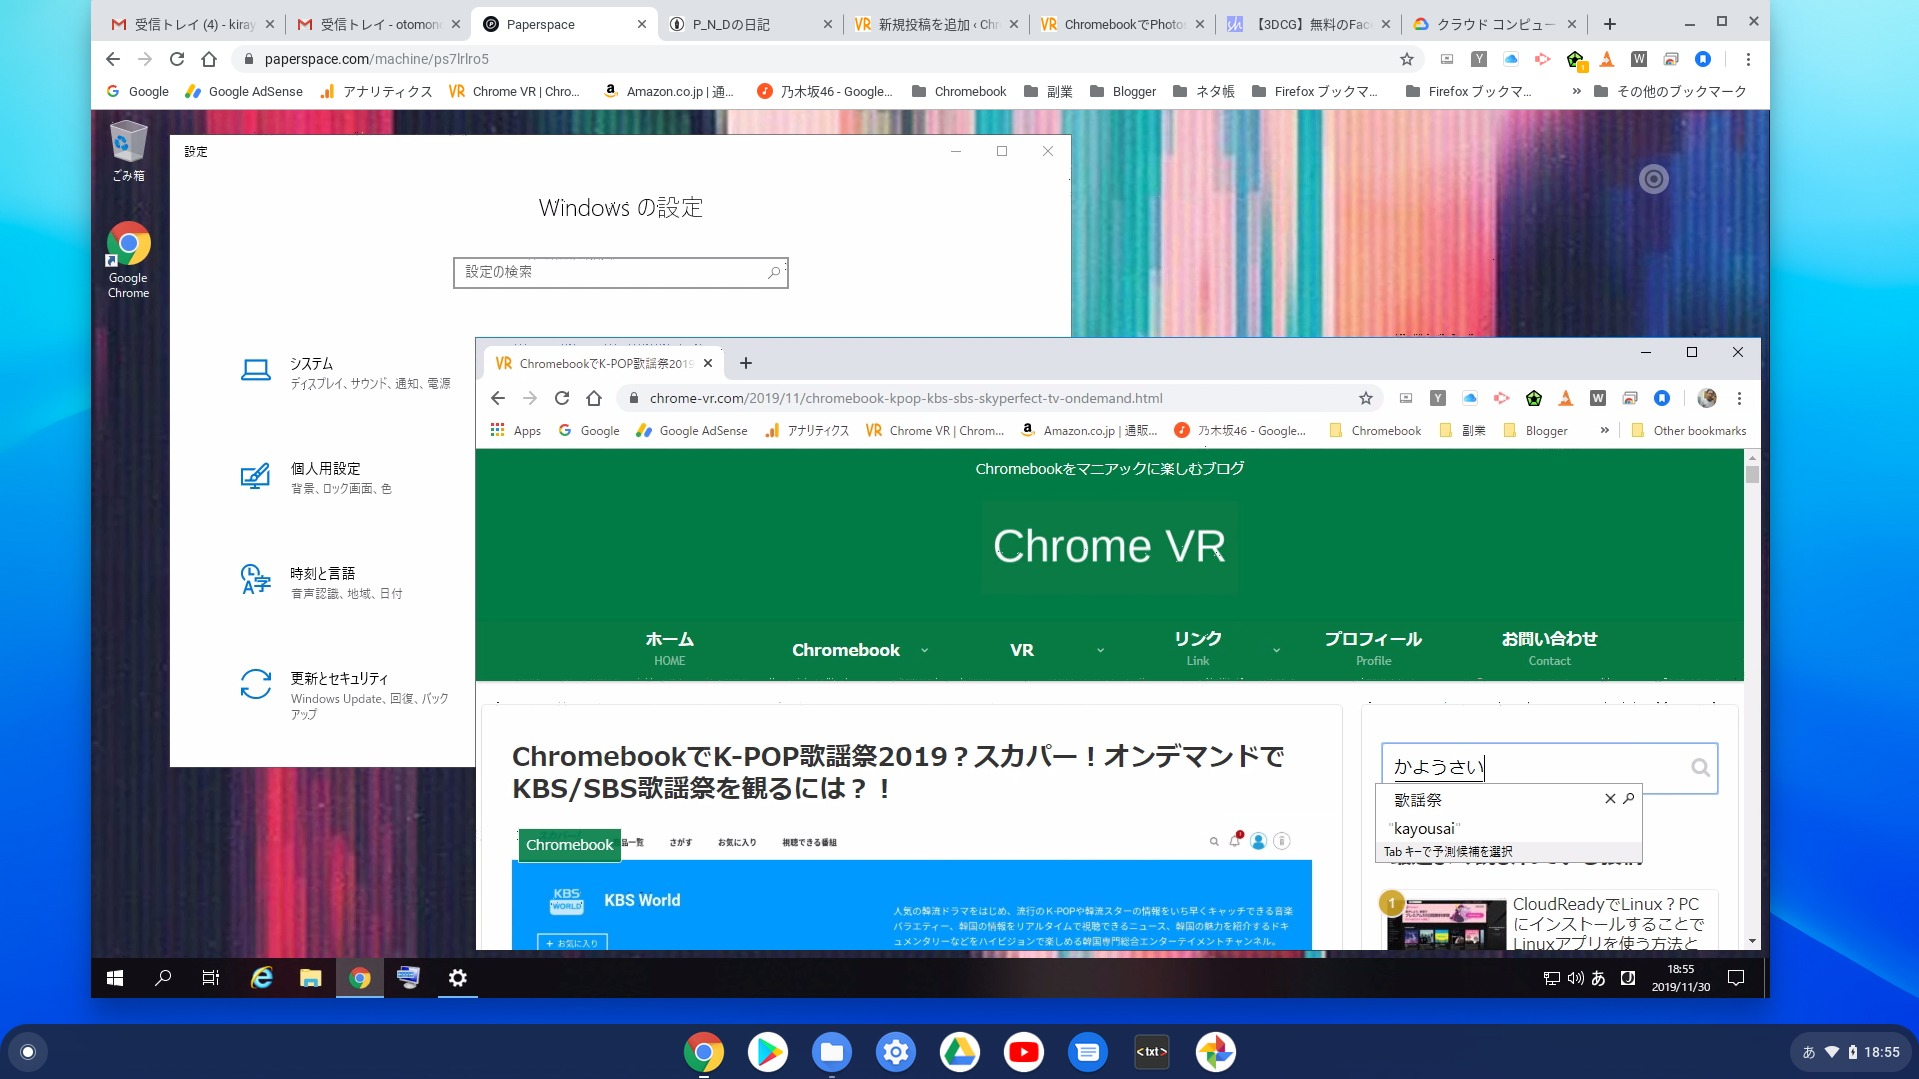 Chromebook Paperspace 仮想Windows GPU